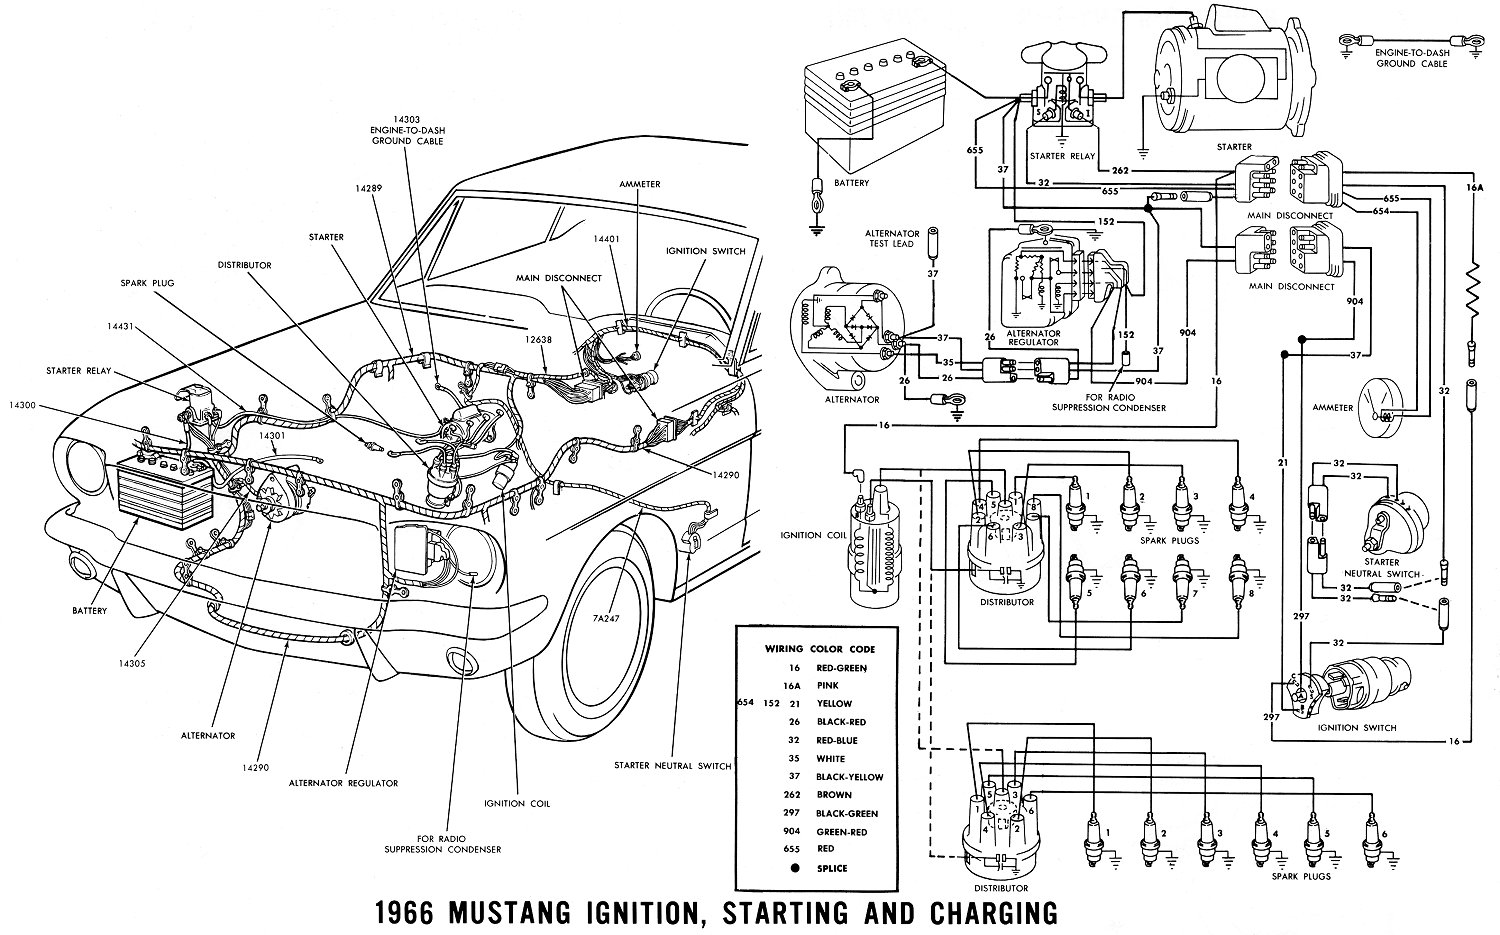 Ignition Switch Wiring Diagram Moreover 1965 Ford Mustang on 2002 vw beetle thermostat location